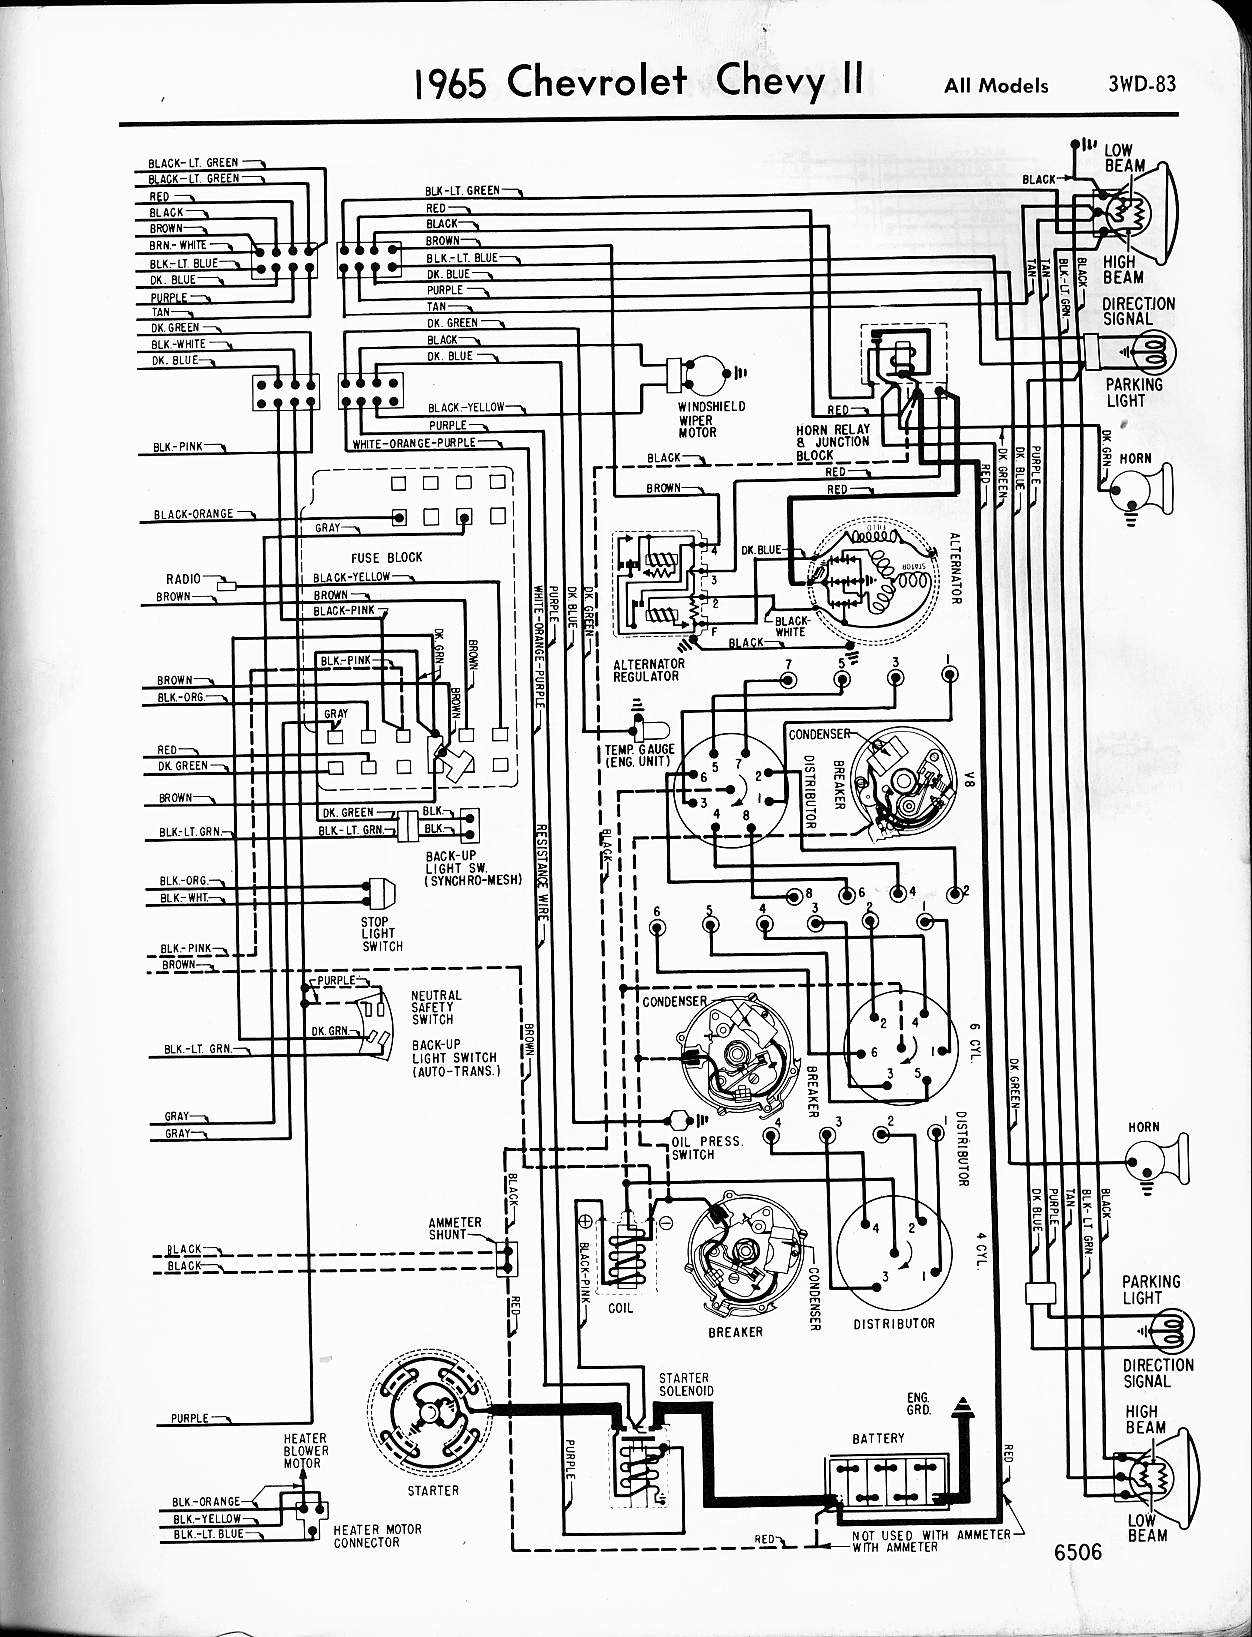 64 Chevy C20 Wiring Diagram FULL HD Version Wiring Diagram - LIMA-DIAGRAM .EXPERTSUNIVERSITY.ITDiagram Database